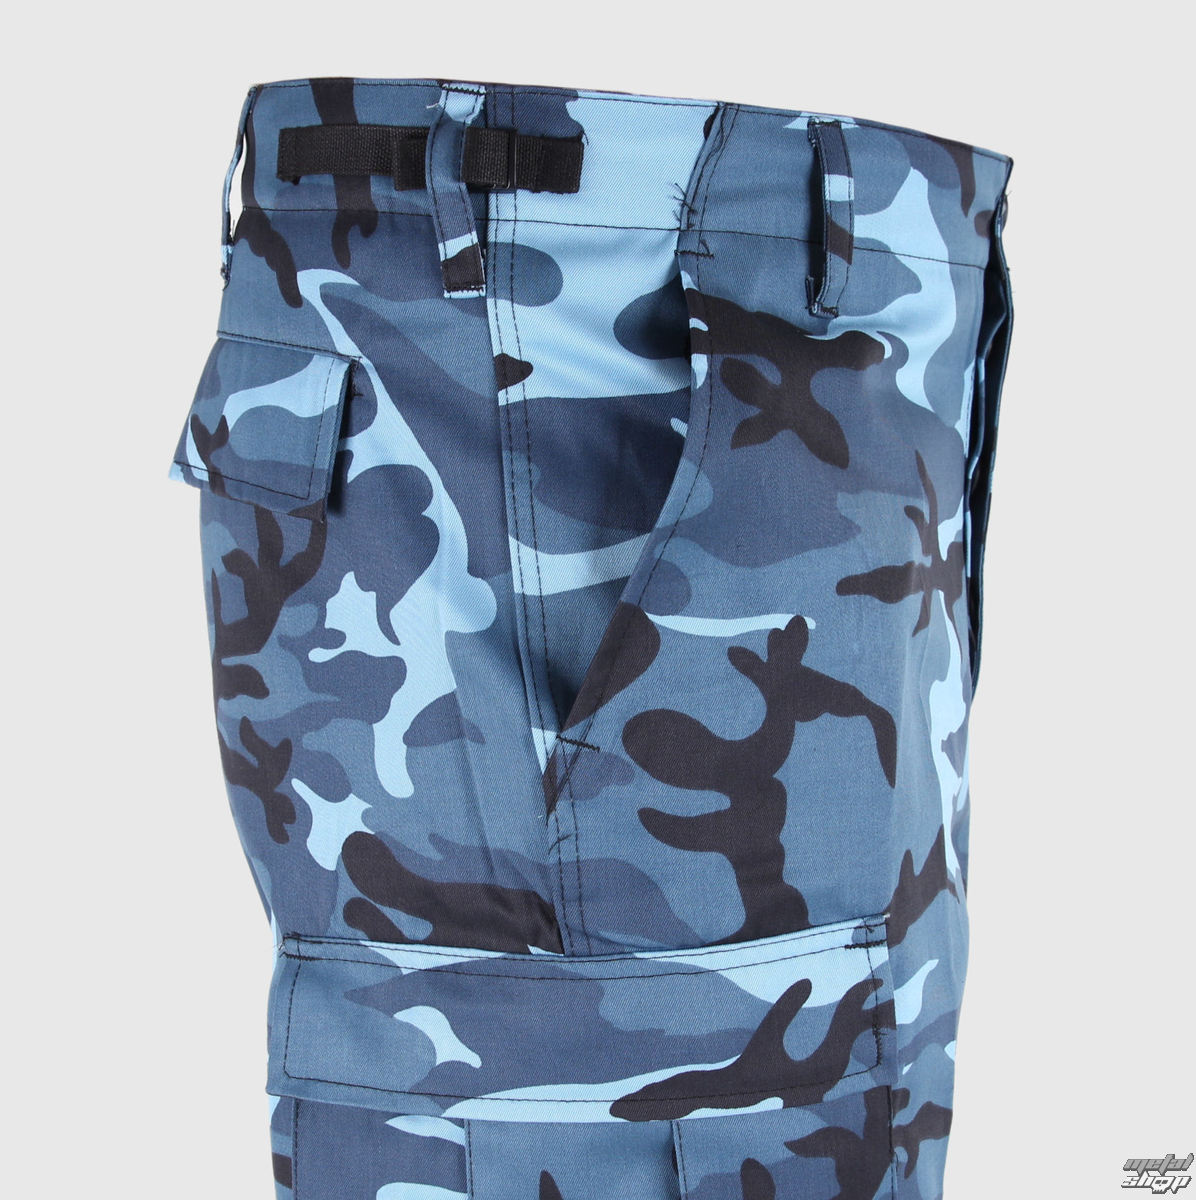 Blue camo pants for men